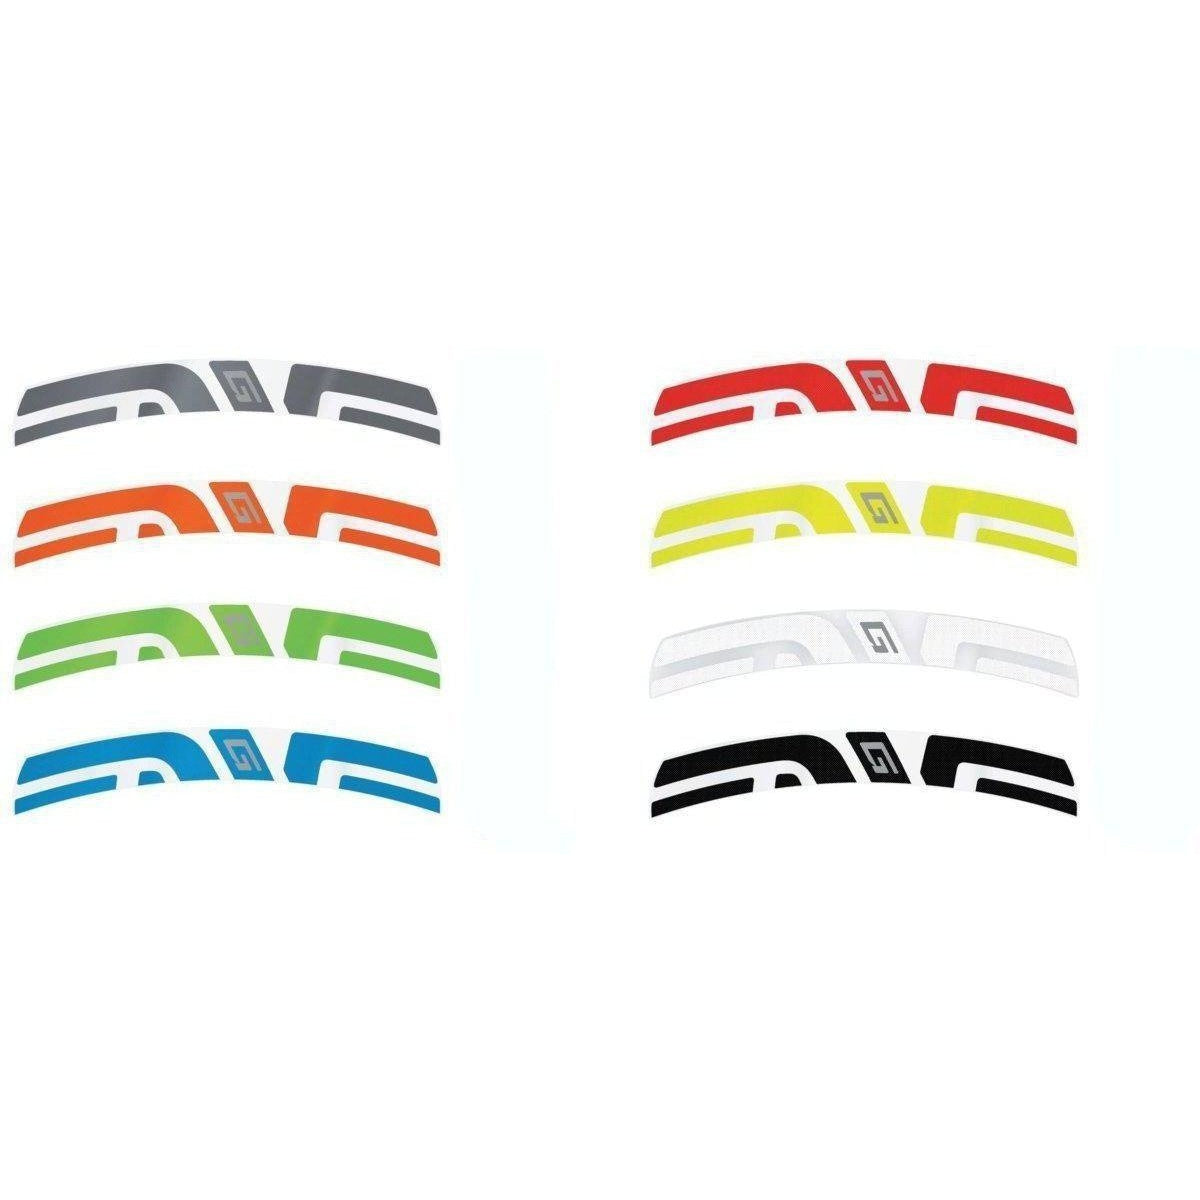 ENVE G23 Decals – 6 Pack